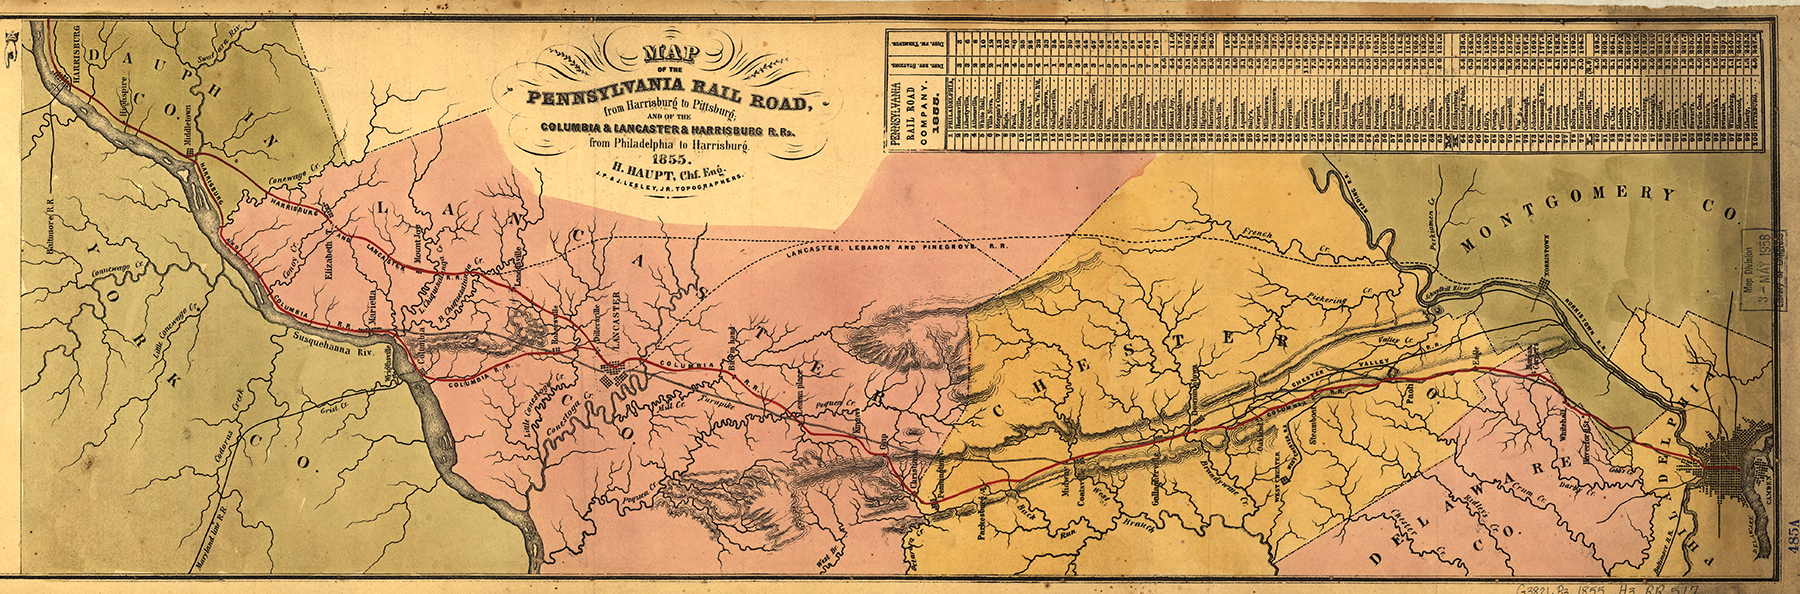 Detail of the 1855 map under Chief Engineer H. P Haupt shows the proposed Lebanon, Lancaster & Pine Grove Railroad (across the upper center area of the map) which would eliminate the need to purchase the State's failing Main Line of Public Works. Though the route was never built the similarities of the line with Downingtown & Lancaster branch makes one wonder if the property had once been considered to be part of the plan had the Commonwealth and the PRR never came to terms. Map collection of the Library of Congress